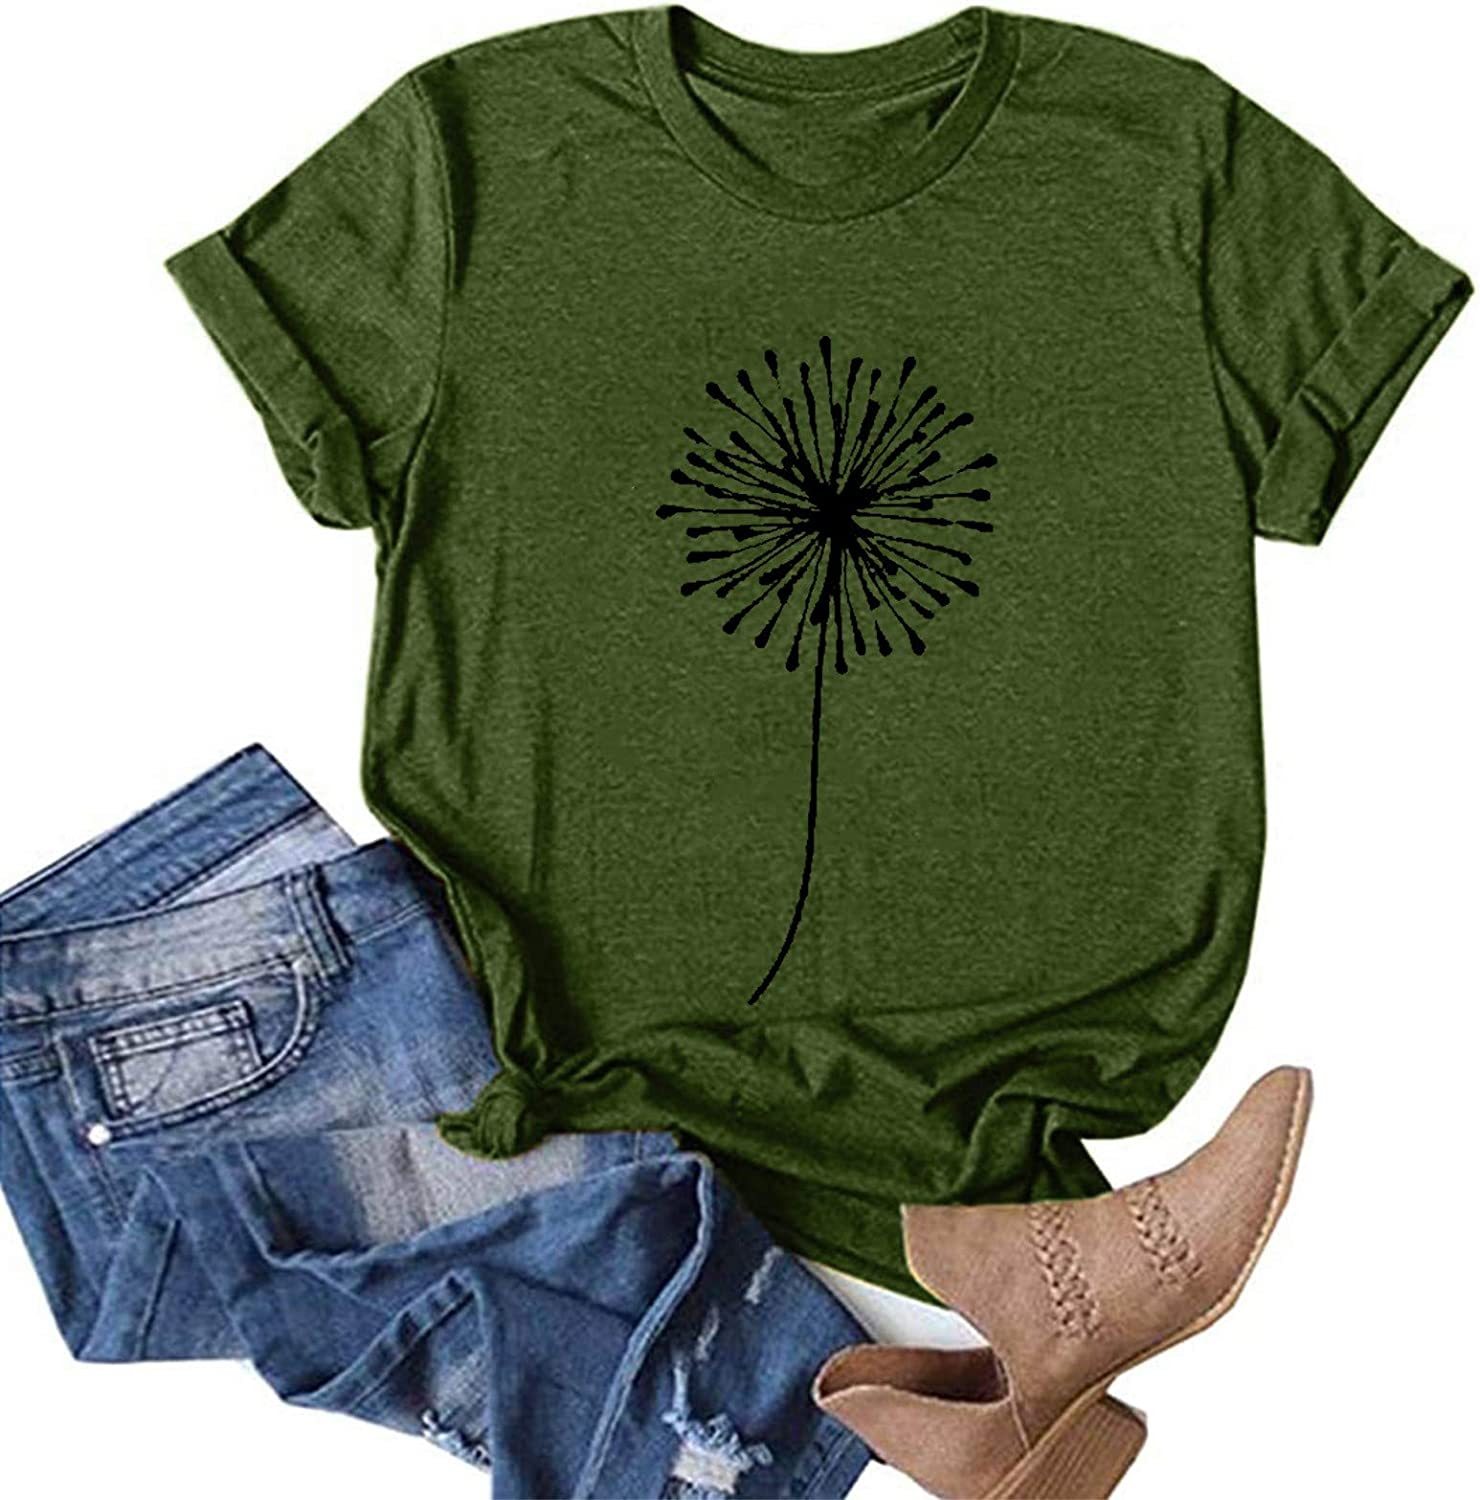 Aukbays Womens Casual Short Sleeve Dandelion Printed Tops Graphic Vintage Tees Summer T-Shirts Shirts Blouses Tunic